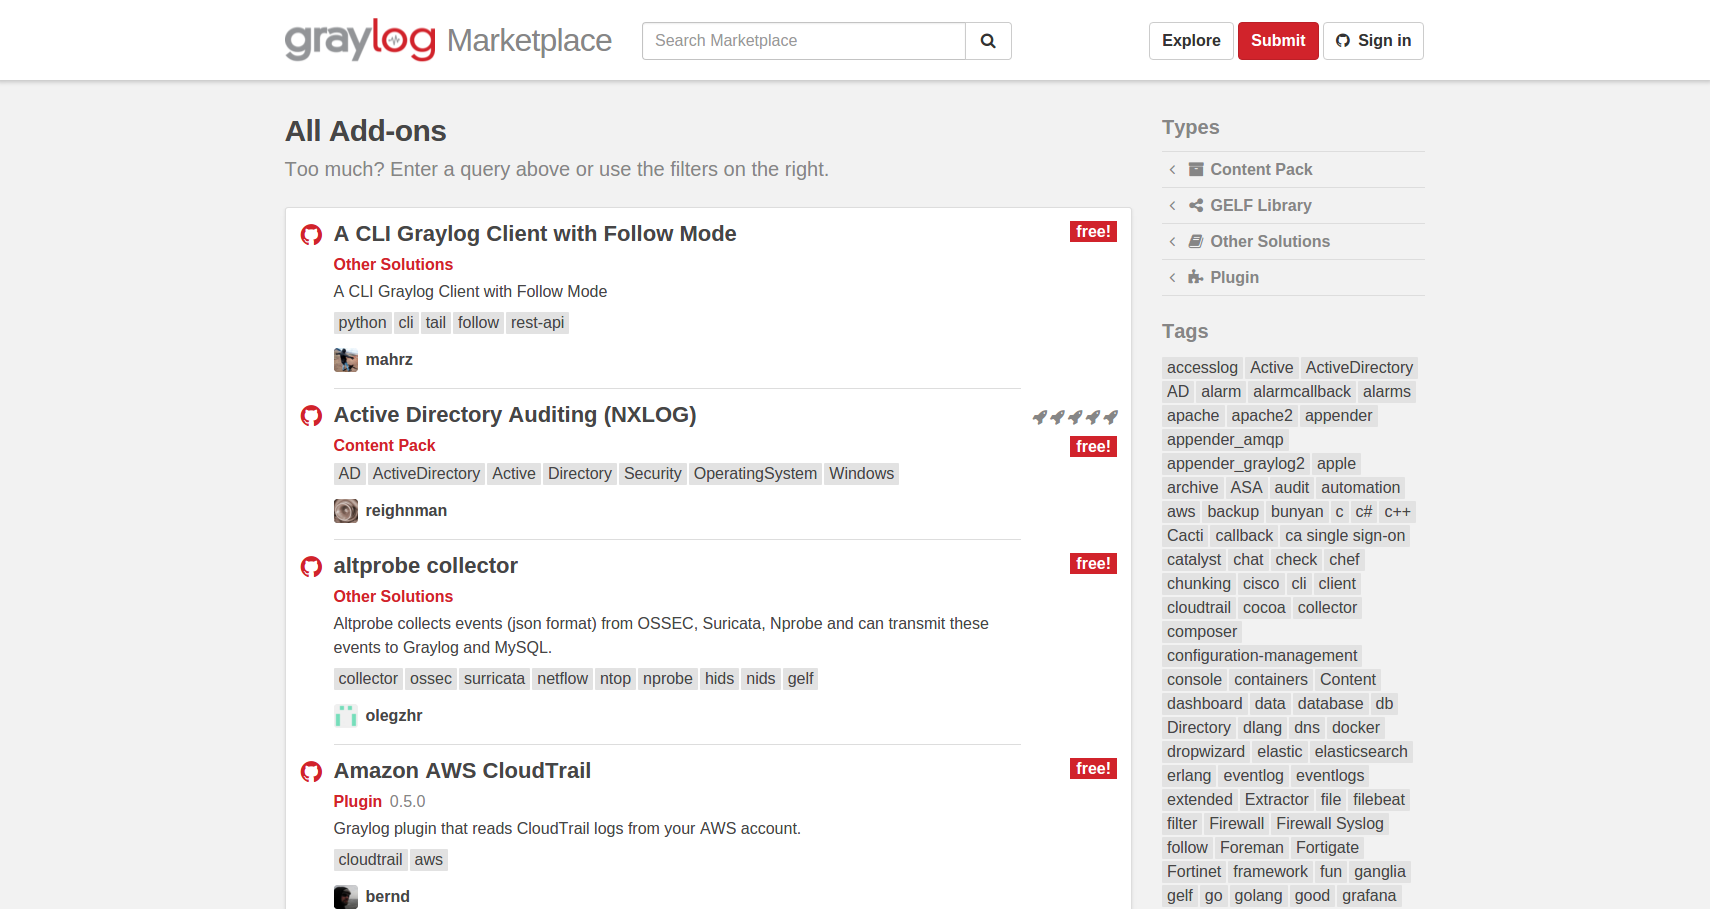 graylog_marketplace_addons